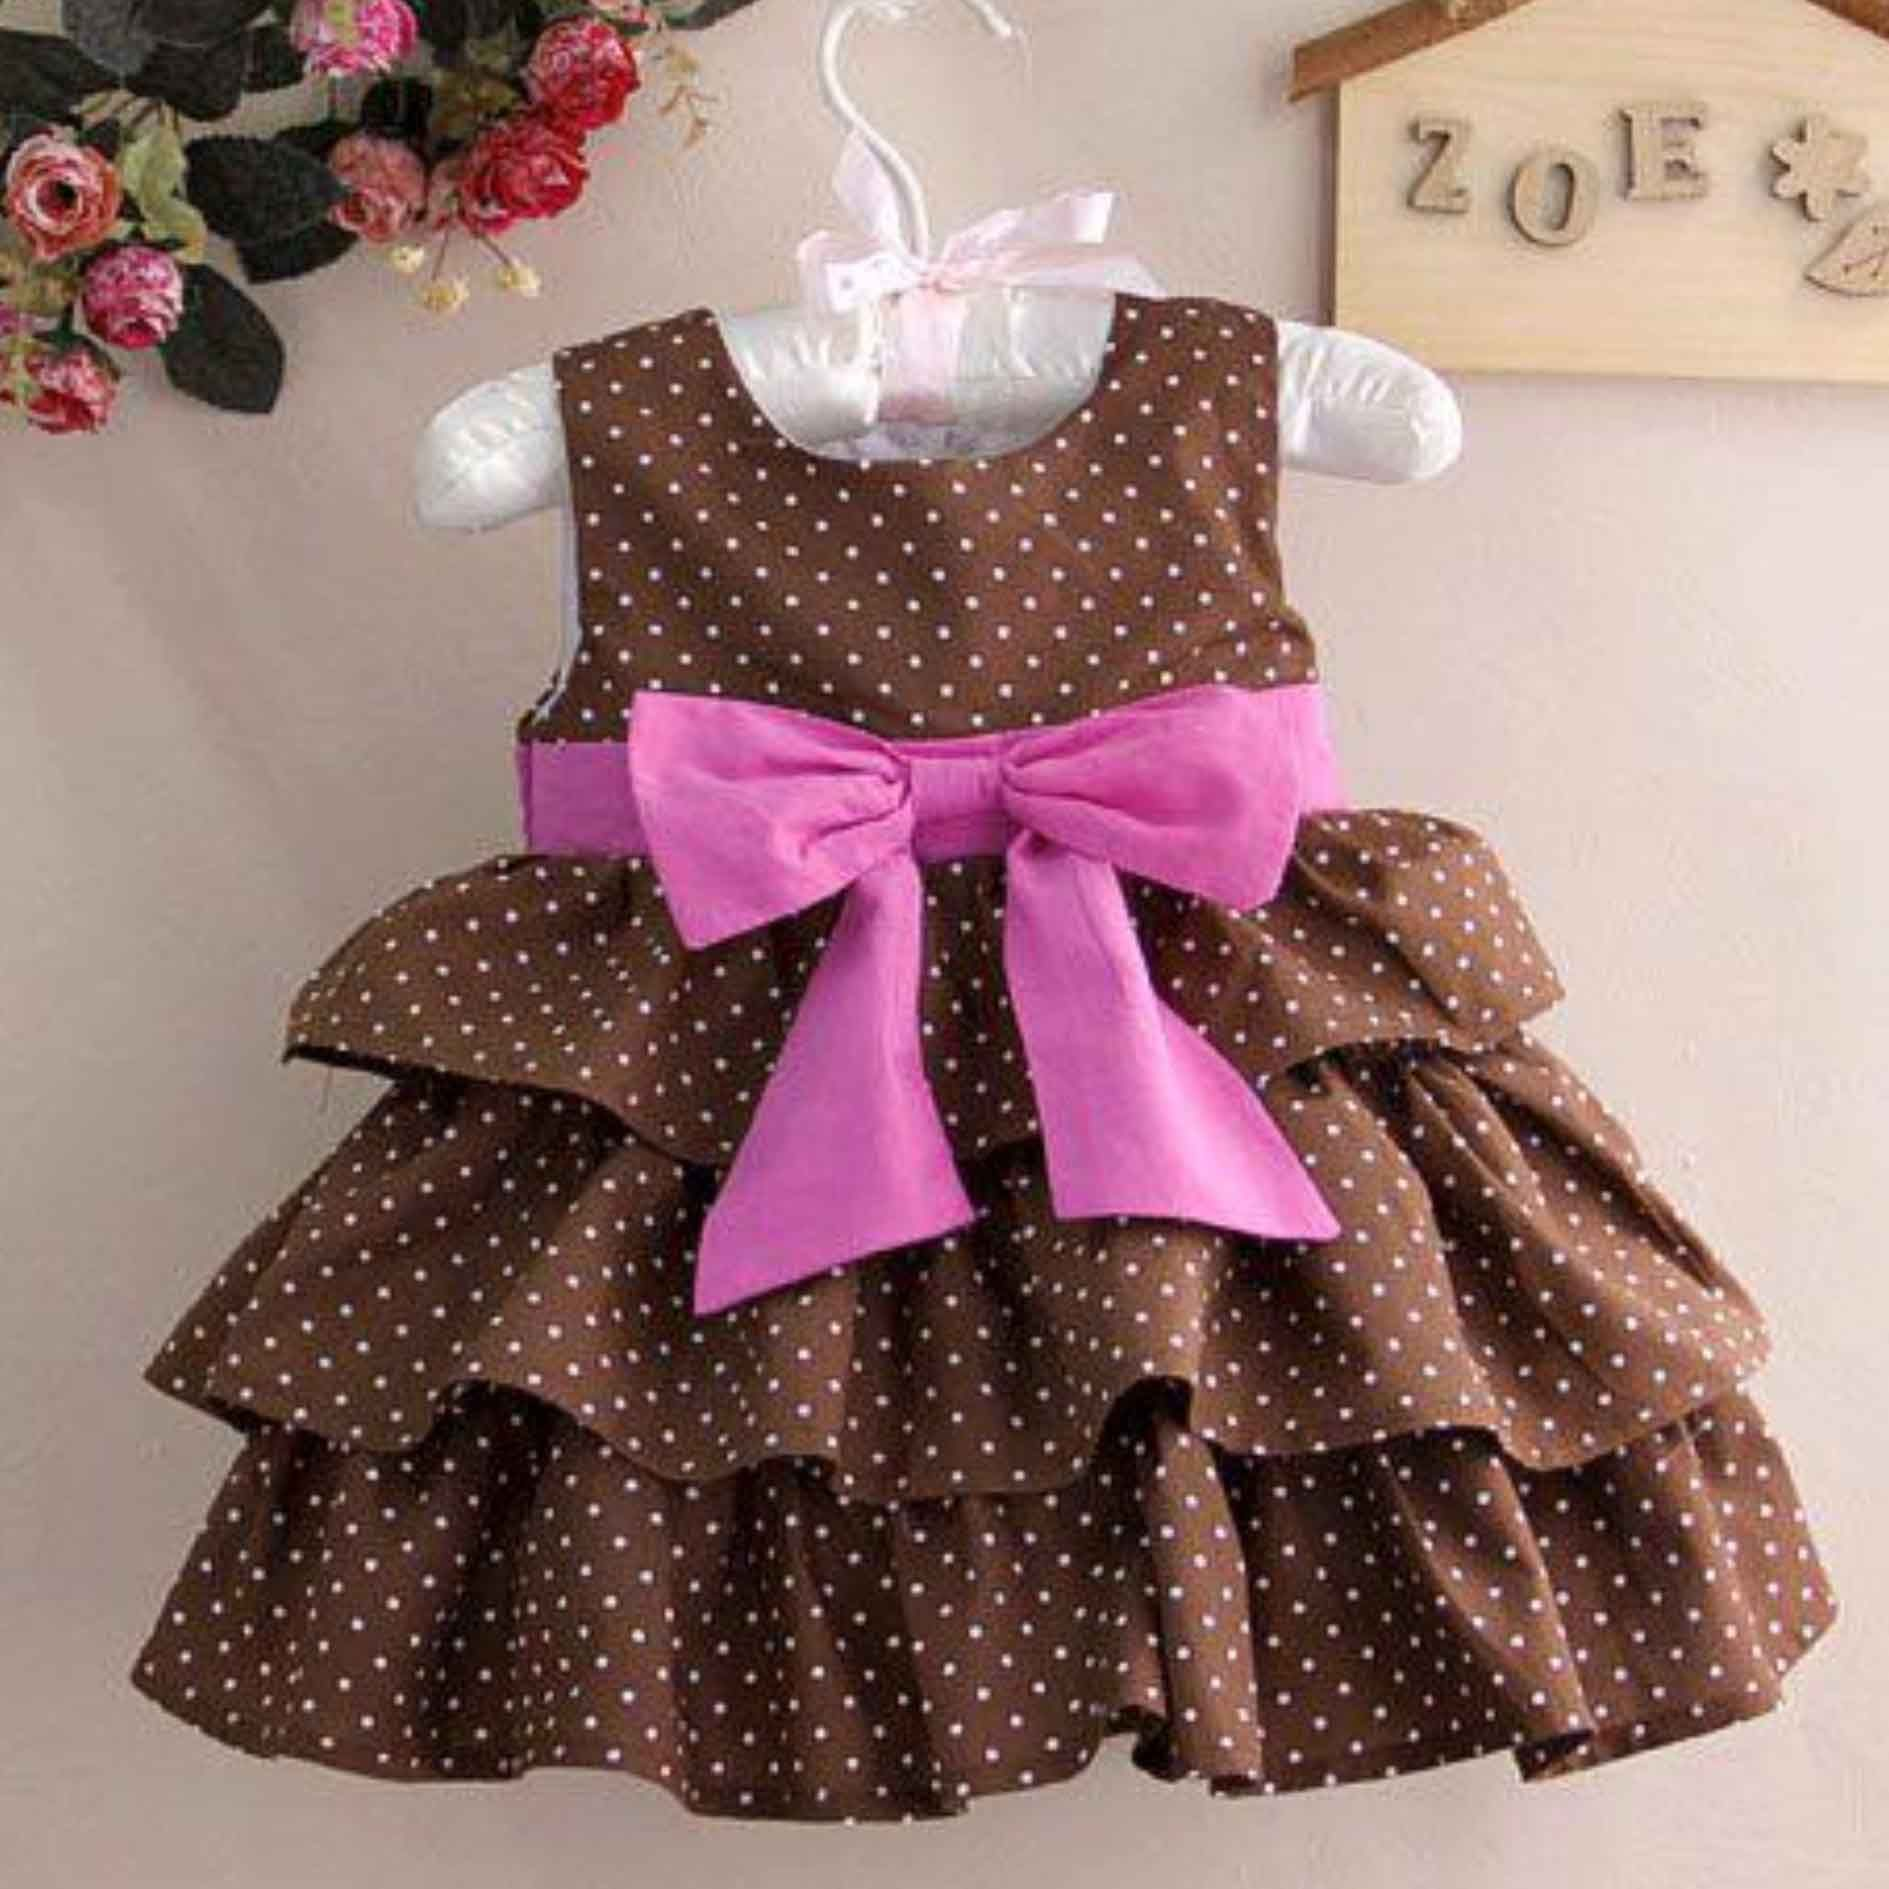 1000 Images About Baju Anak On Pinterest Batik Dress Korea And